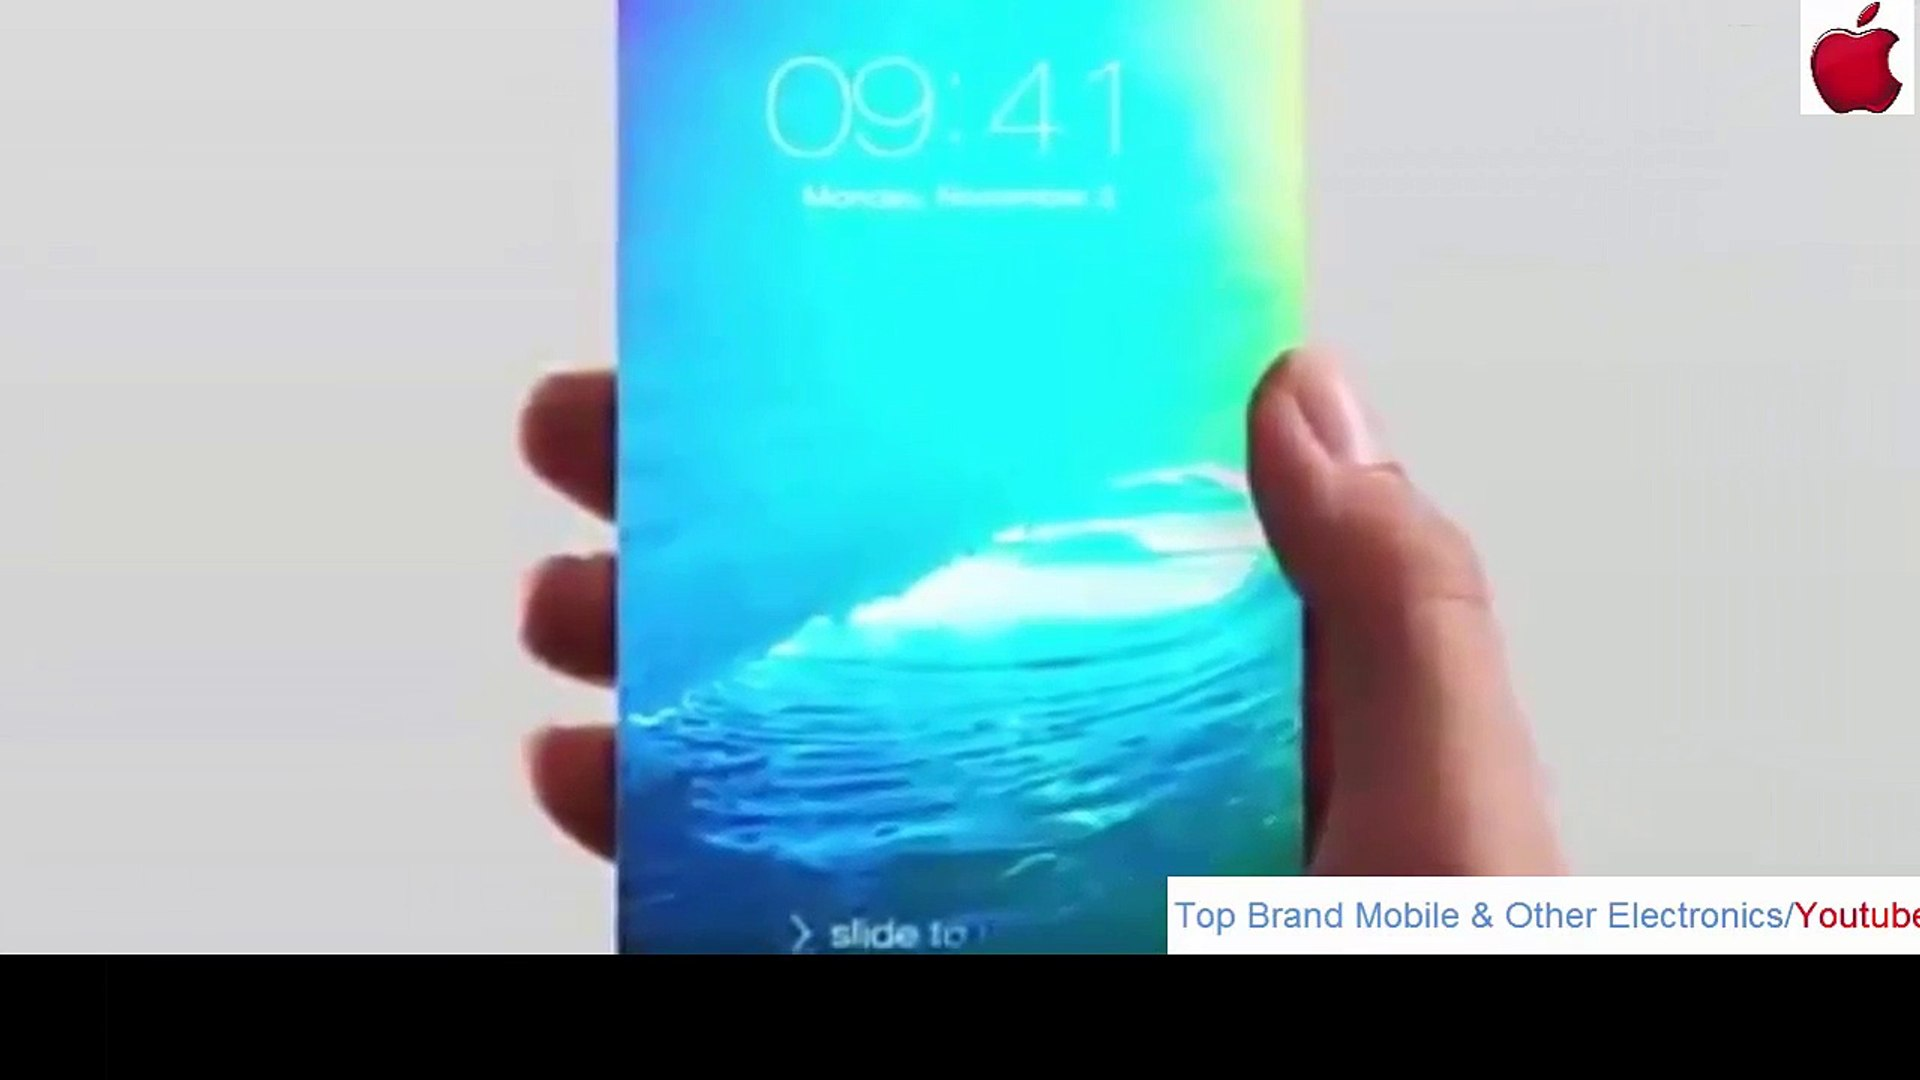 Apple iPhone 8 official Base Model, iPhone 8 final model, iPhone 8 review, iPhone 8